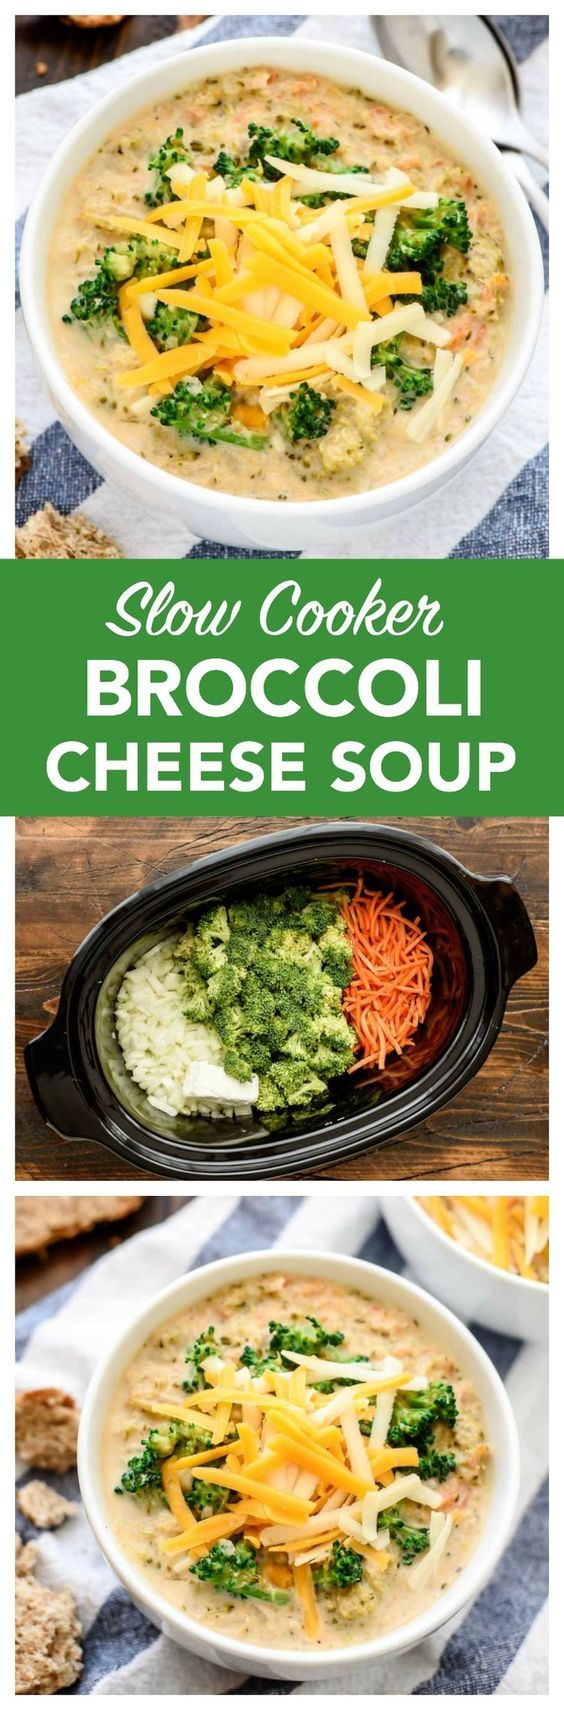 Slow Cooker Broccoli Cheese Soup Recipe   Well Plated by Erin